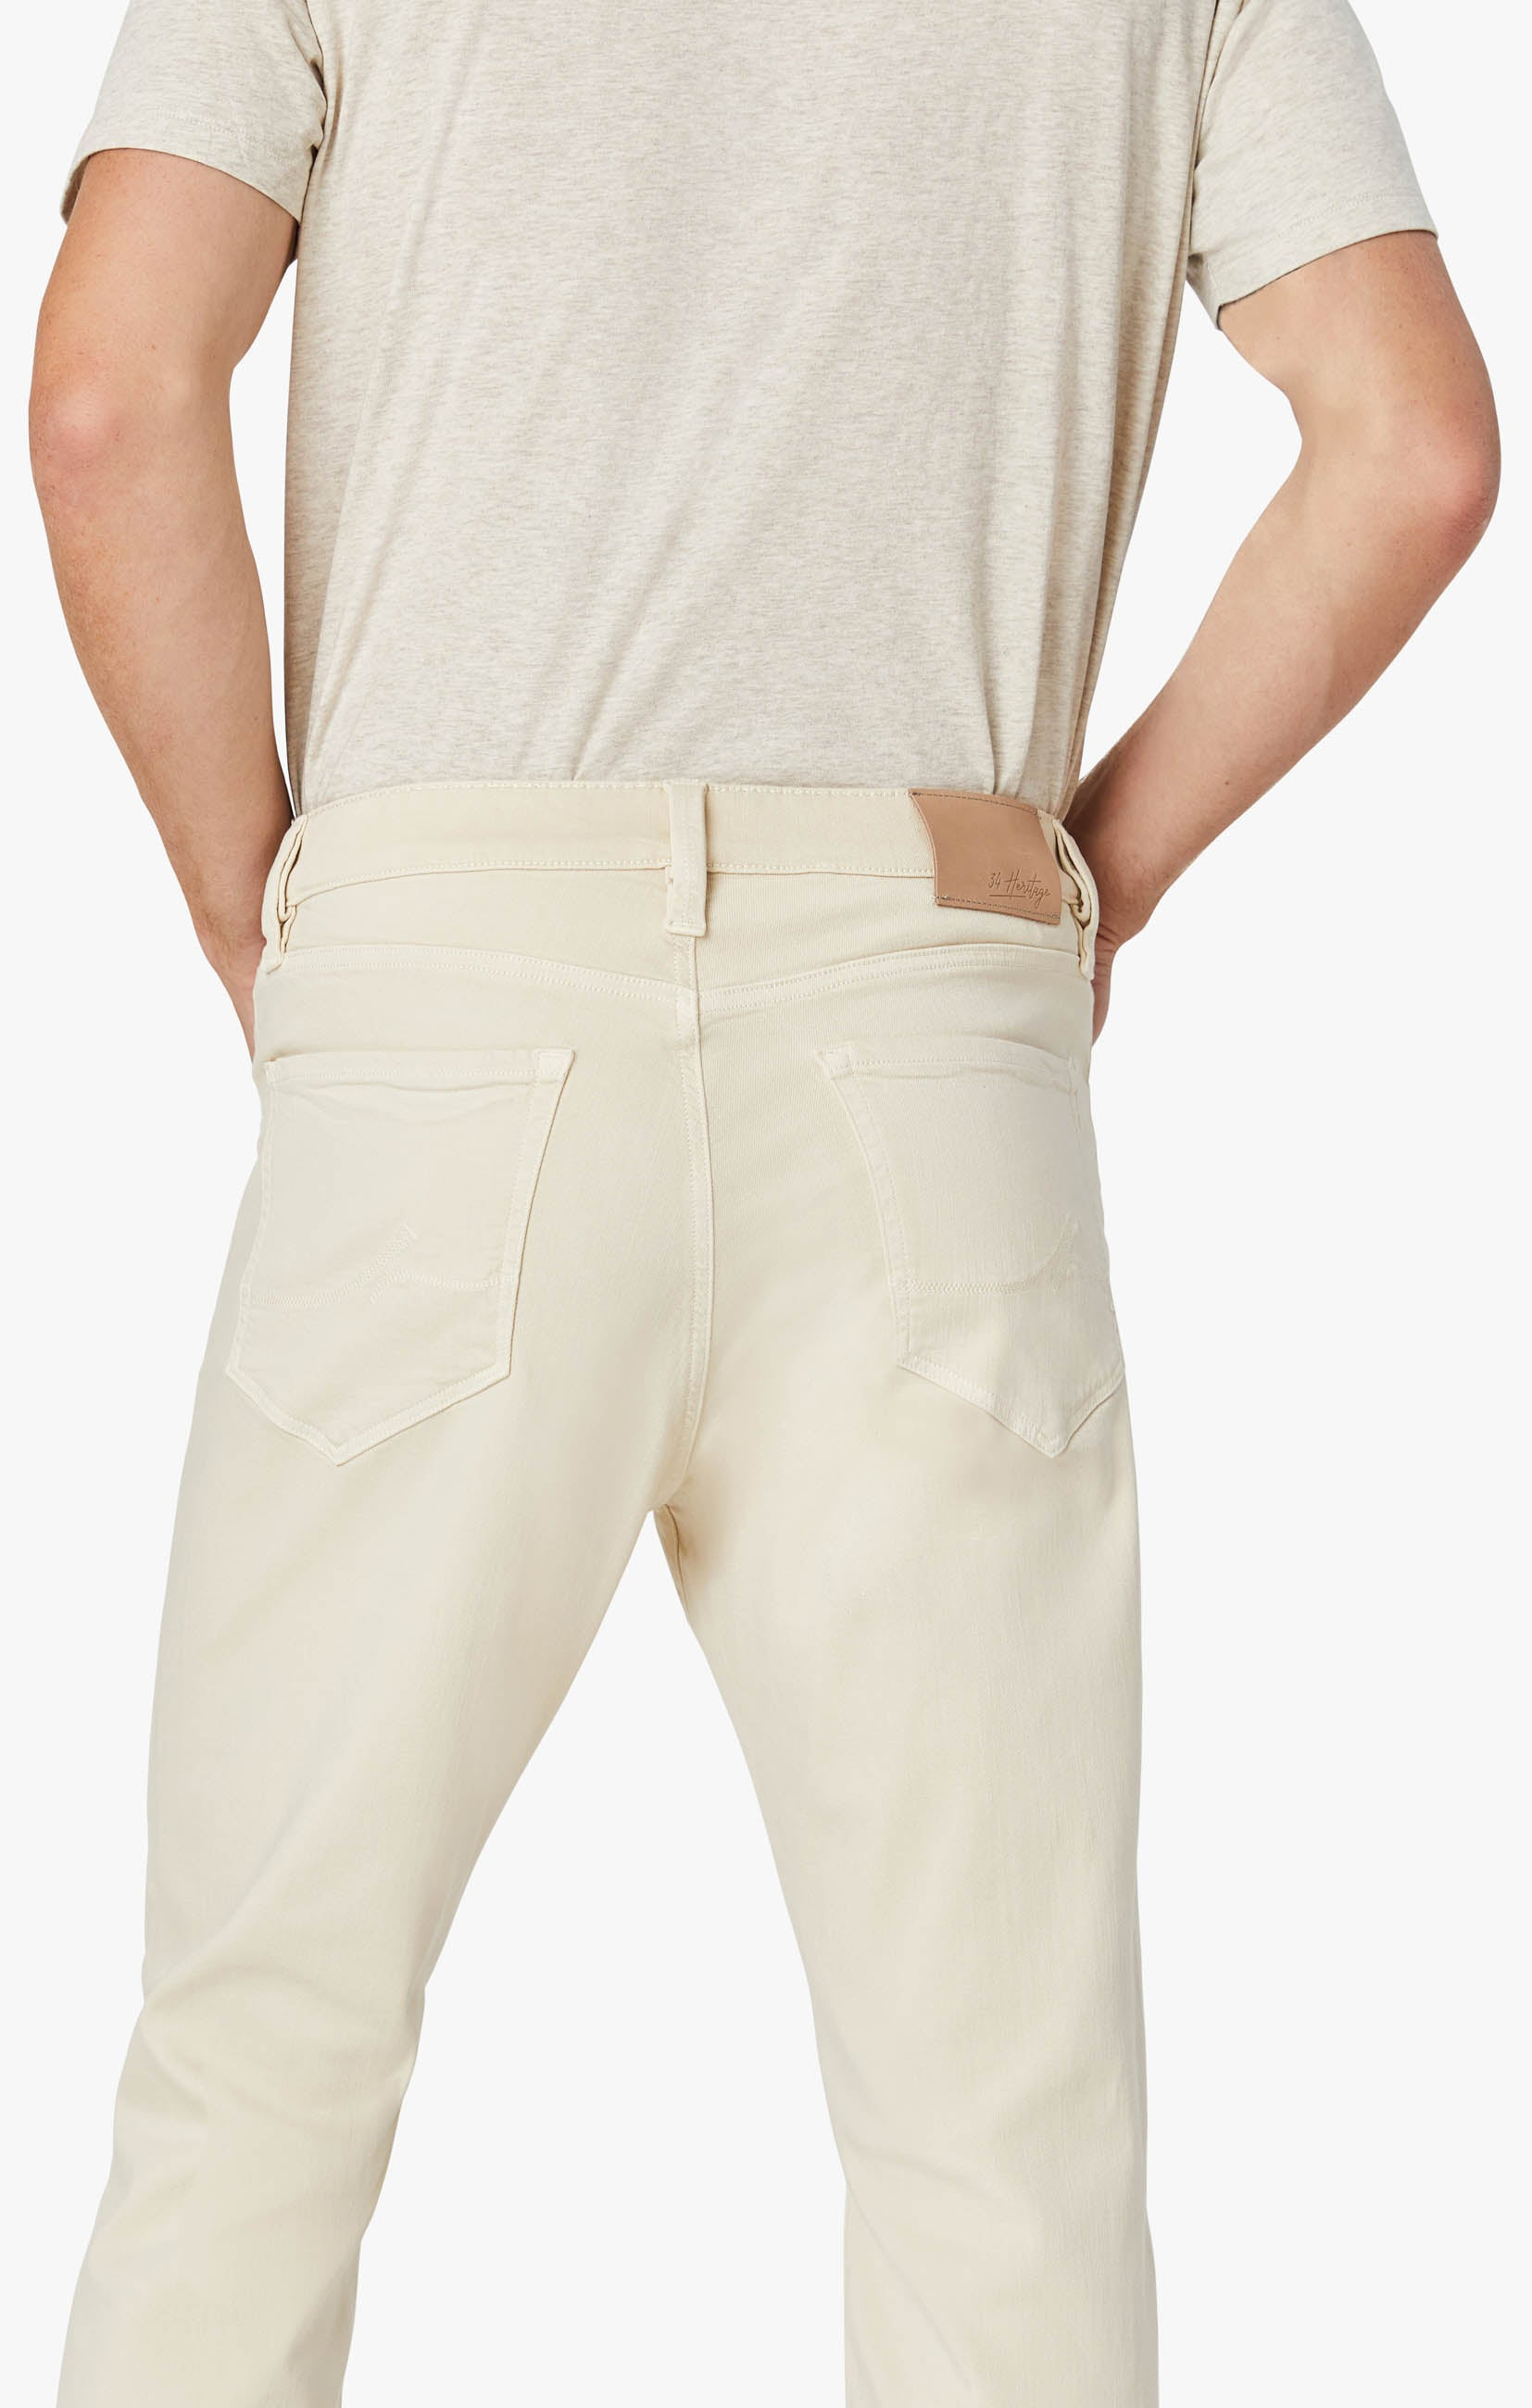 Charisma Relaxed Straight Pants In Natural Comfort Image 5